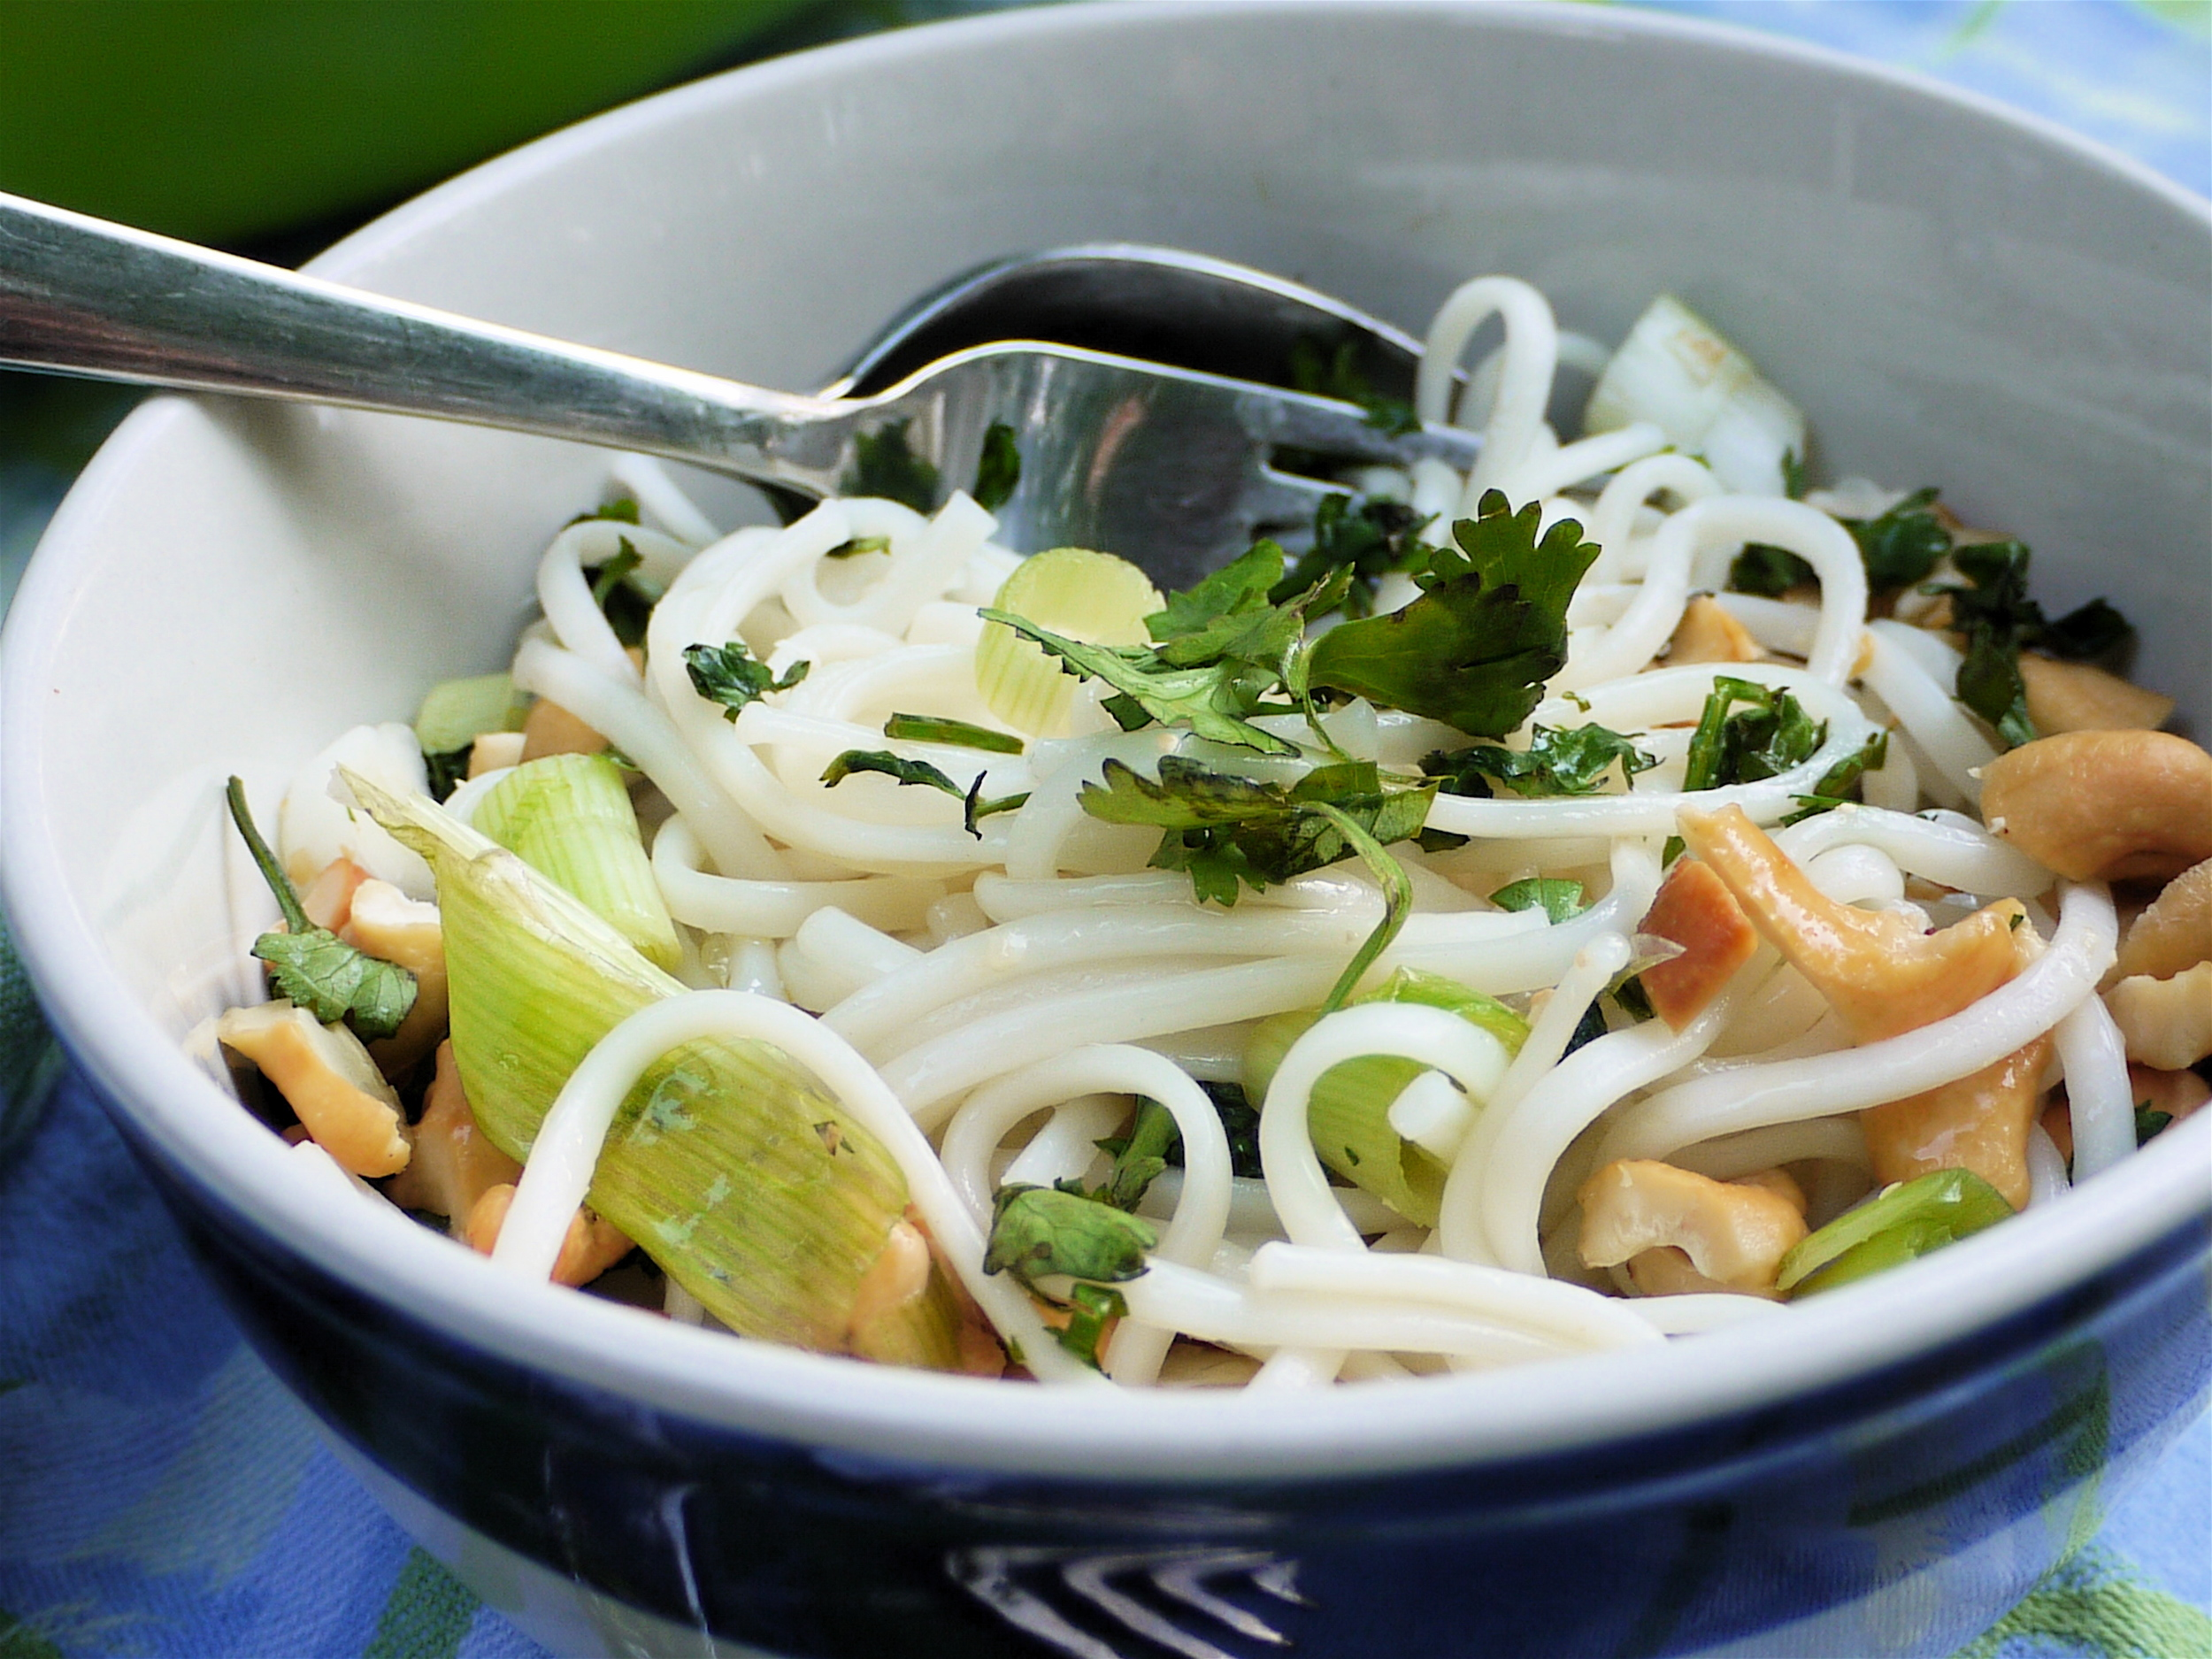 Noodles with scallions, cashews and ginger